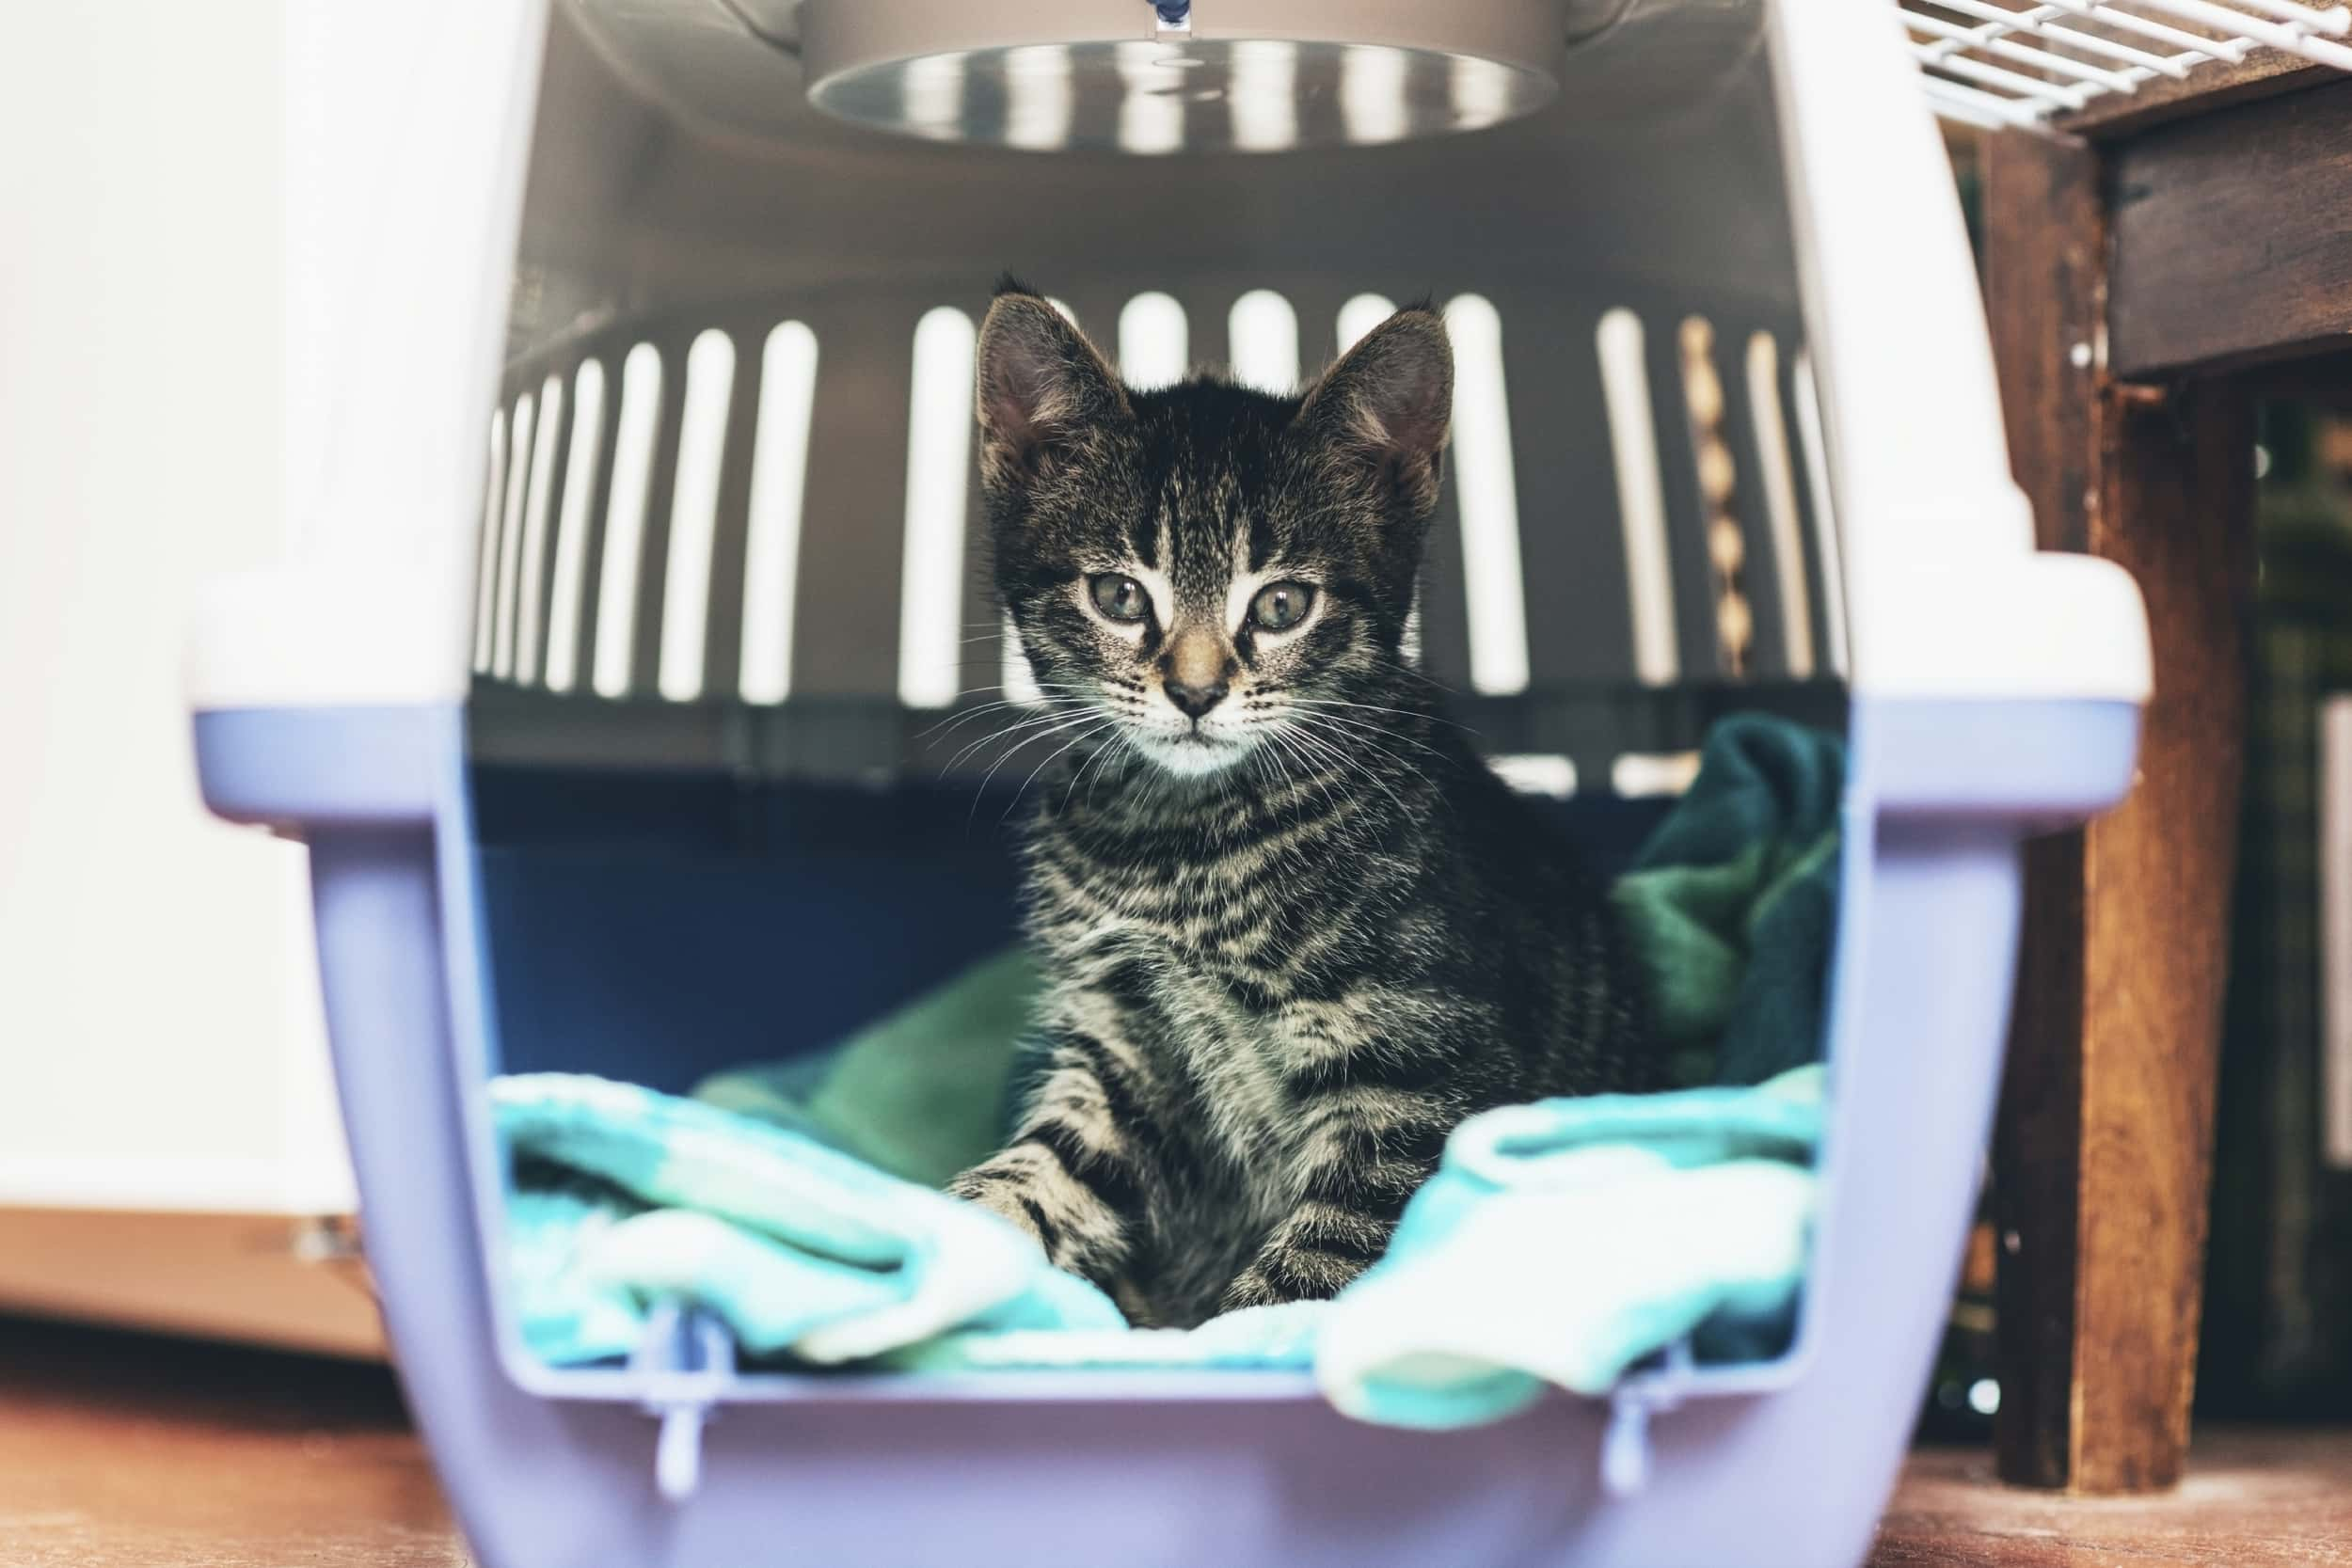 Cute little tabby kitten sitting in a travel crate on a blue blanket staring intently at the camera with big blue eyes